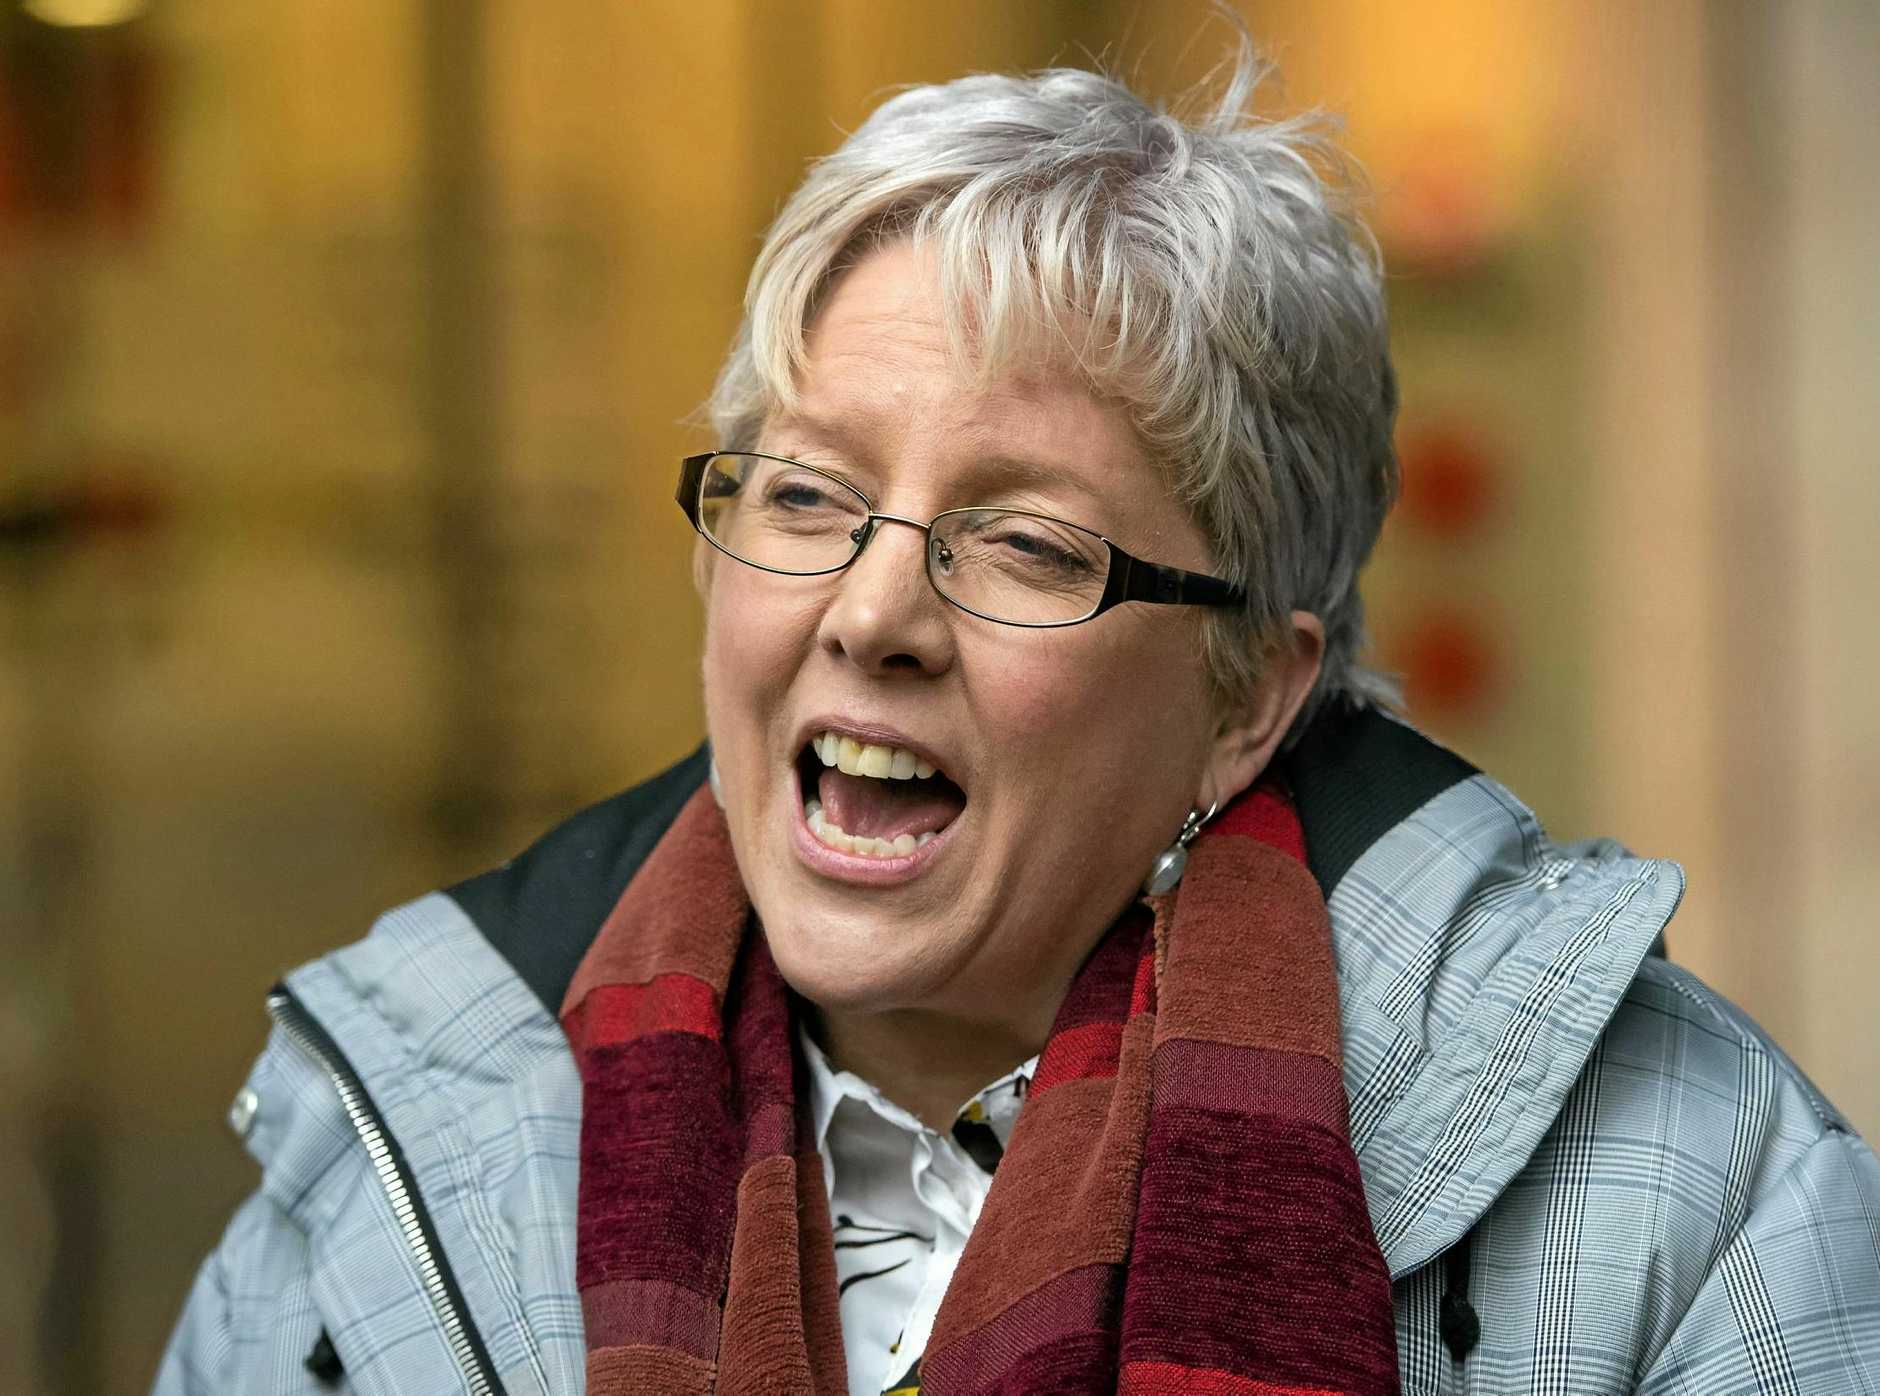 BBC former China editor Carrie Gracie speaks to the media in London after resigning her position in Beijing in protest over what she called a failure to sufficiently address a gap in compensation between men and women at the public broadcaster.